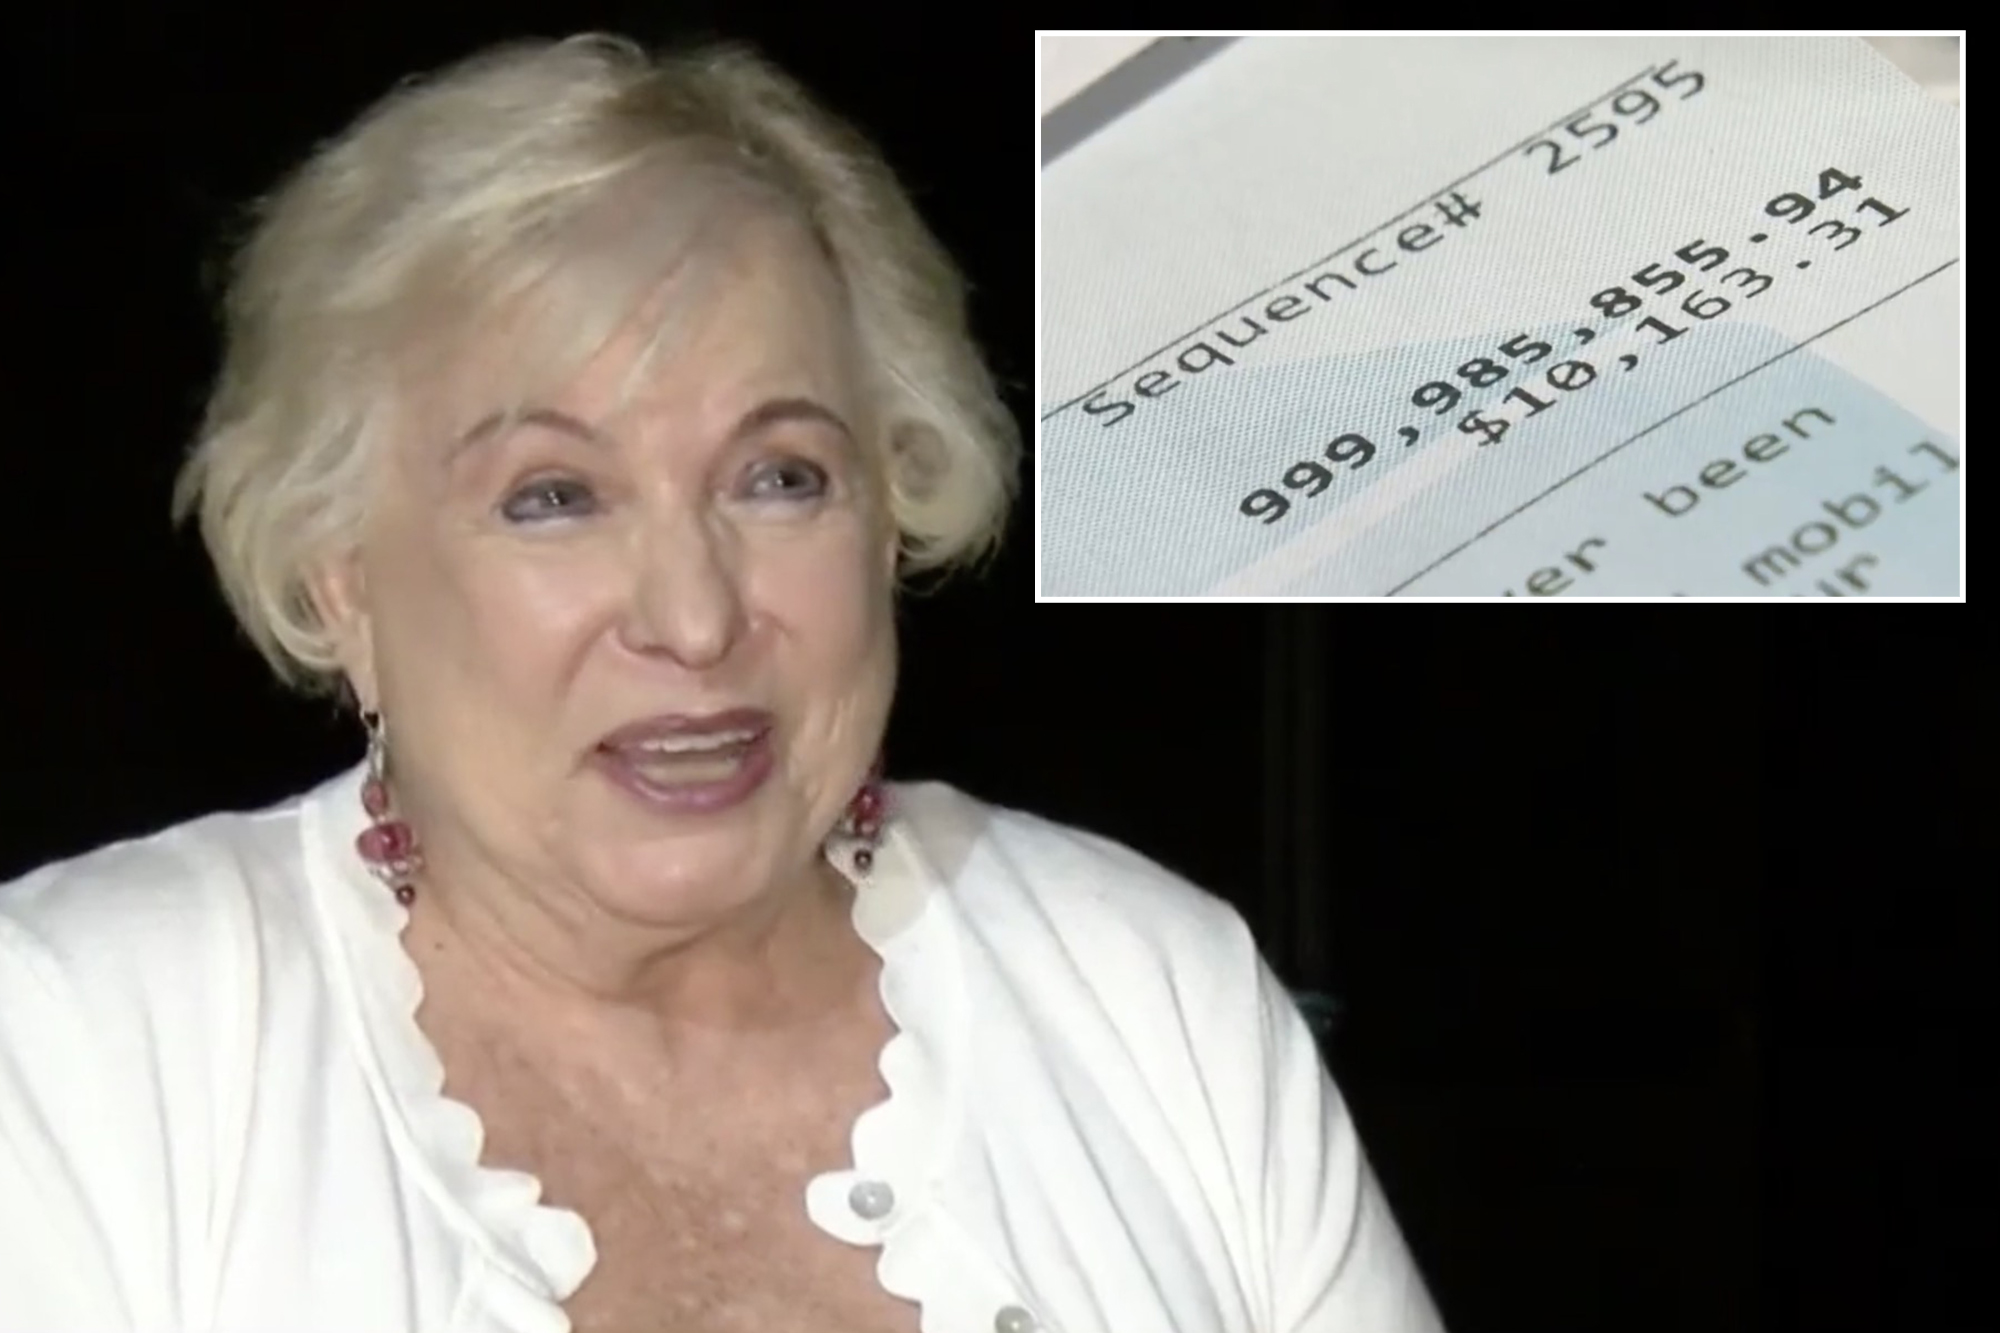 Florida woman goes to withdraw $20 from ATM, but discovers $1 billion in her bank account